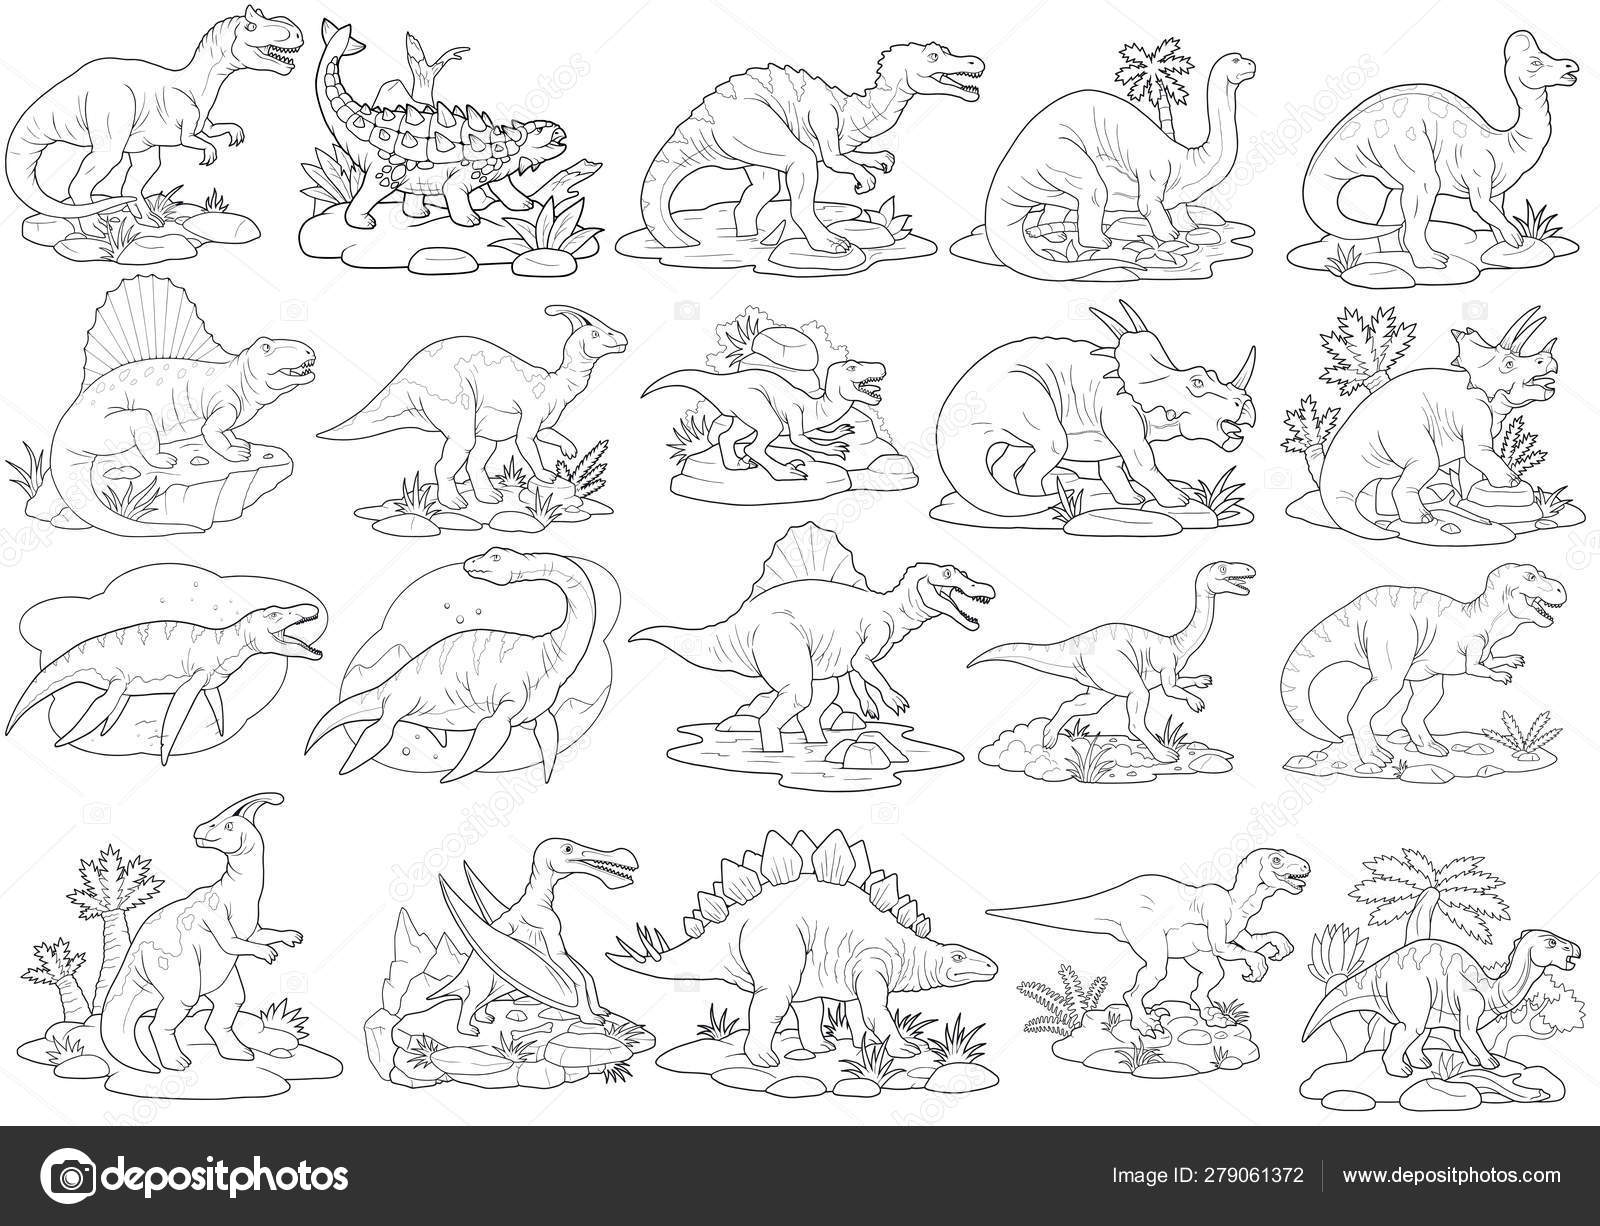 Dinosaurs Coloring Book Set Of Images Stock Photo Image By C Fargon 279061372